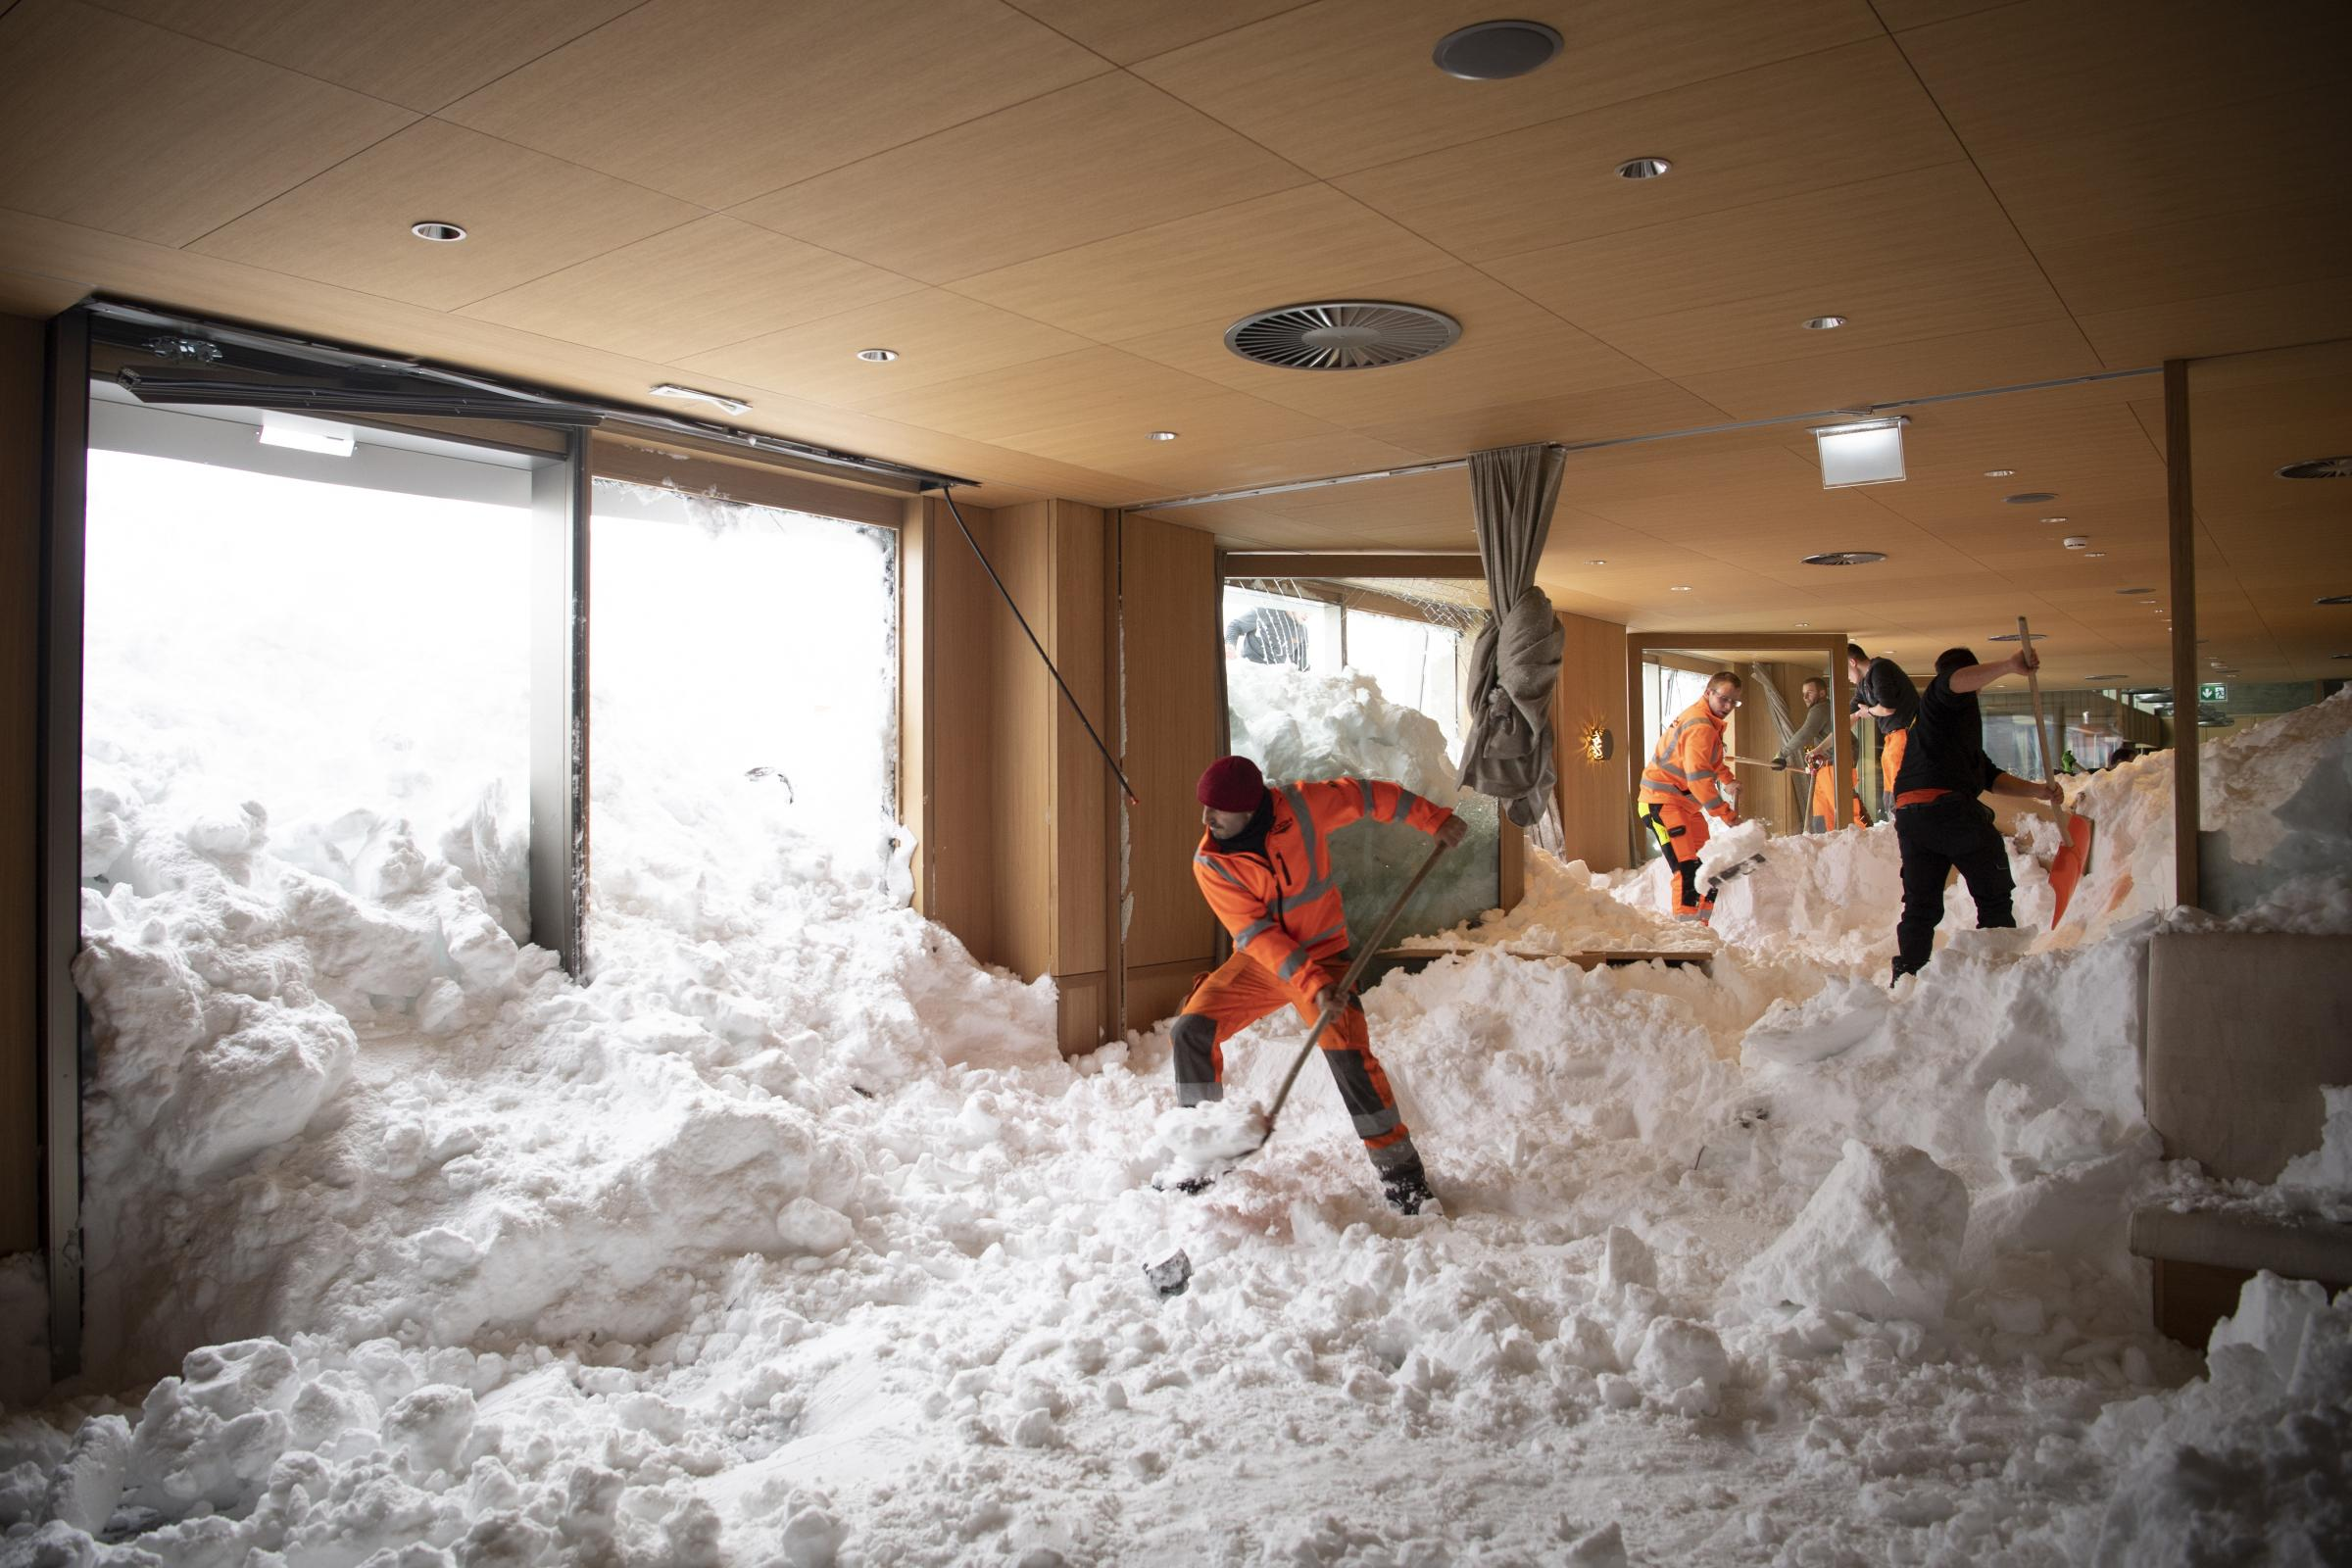 People clear snow from inside the Hotel Saentis in Schwaegalp, Switzerland